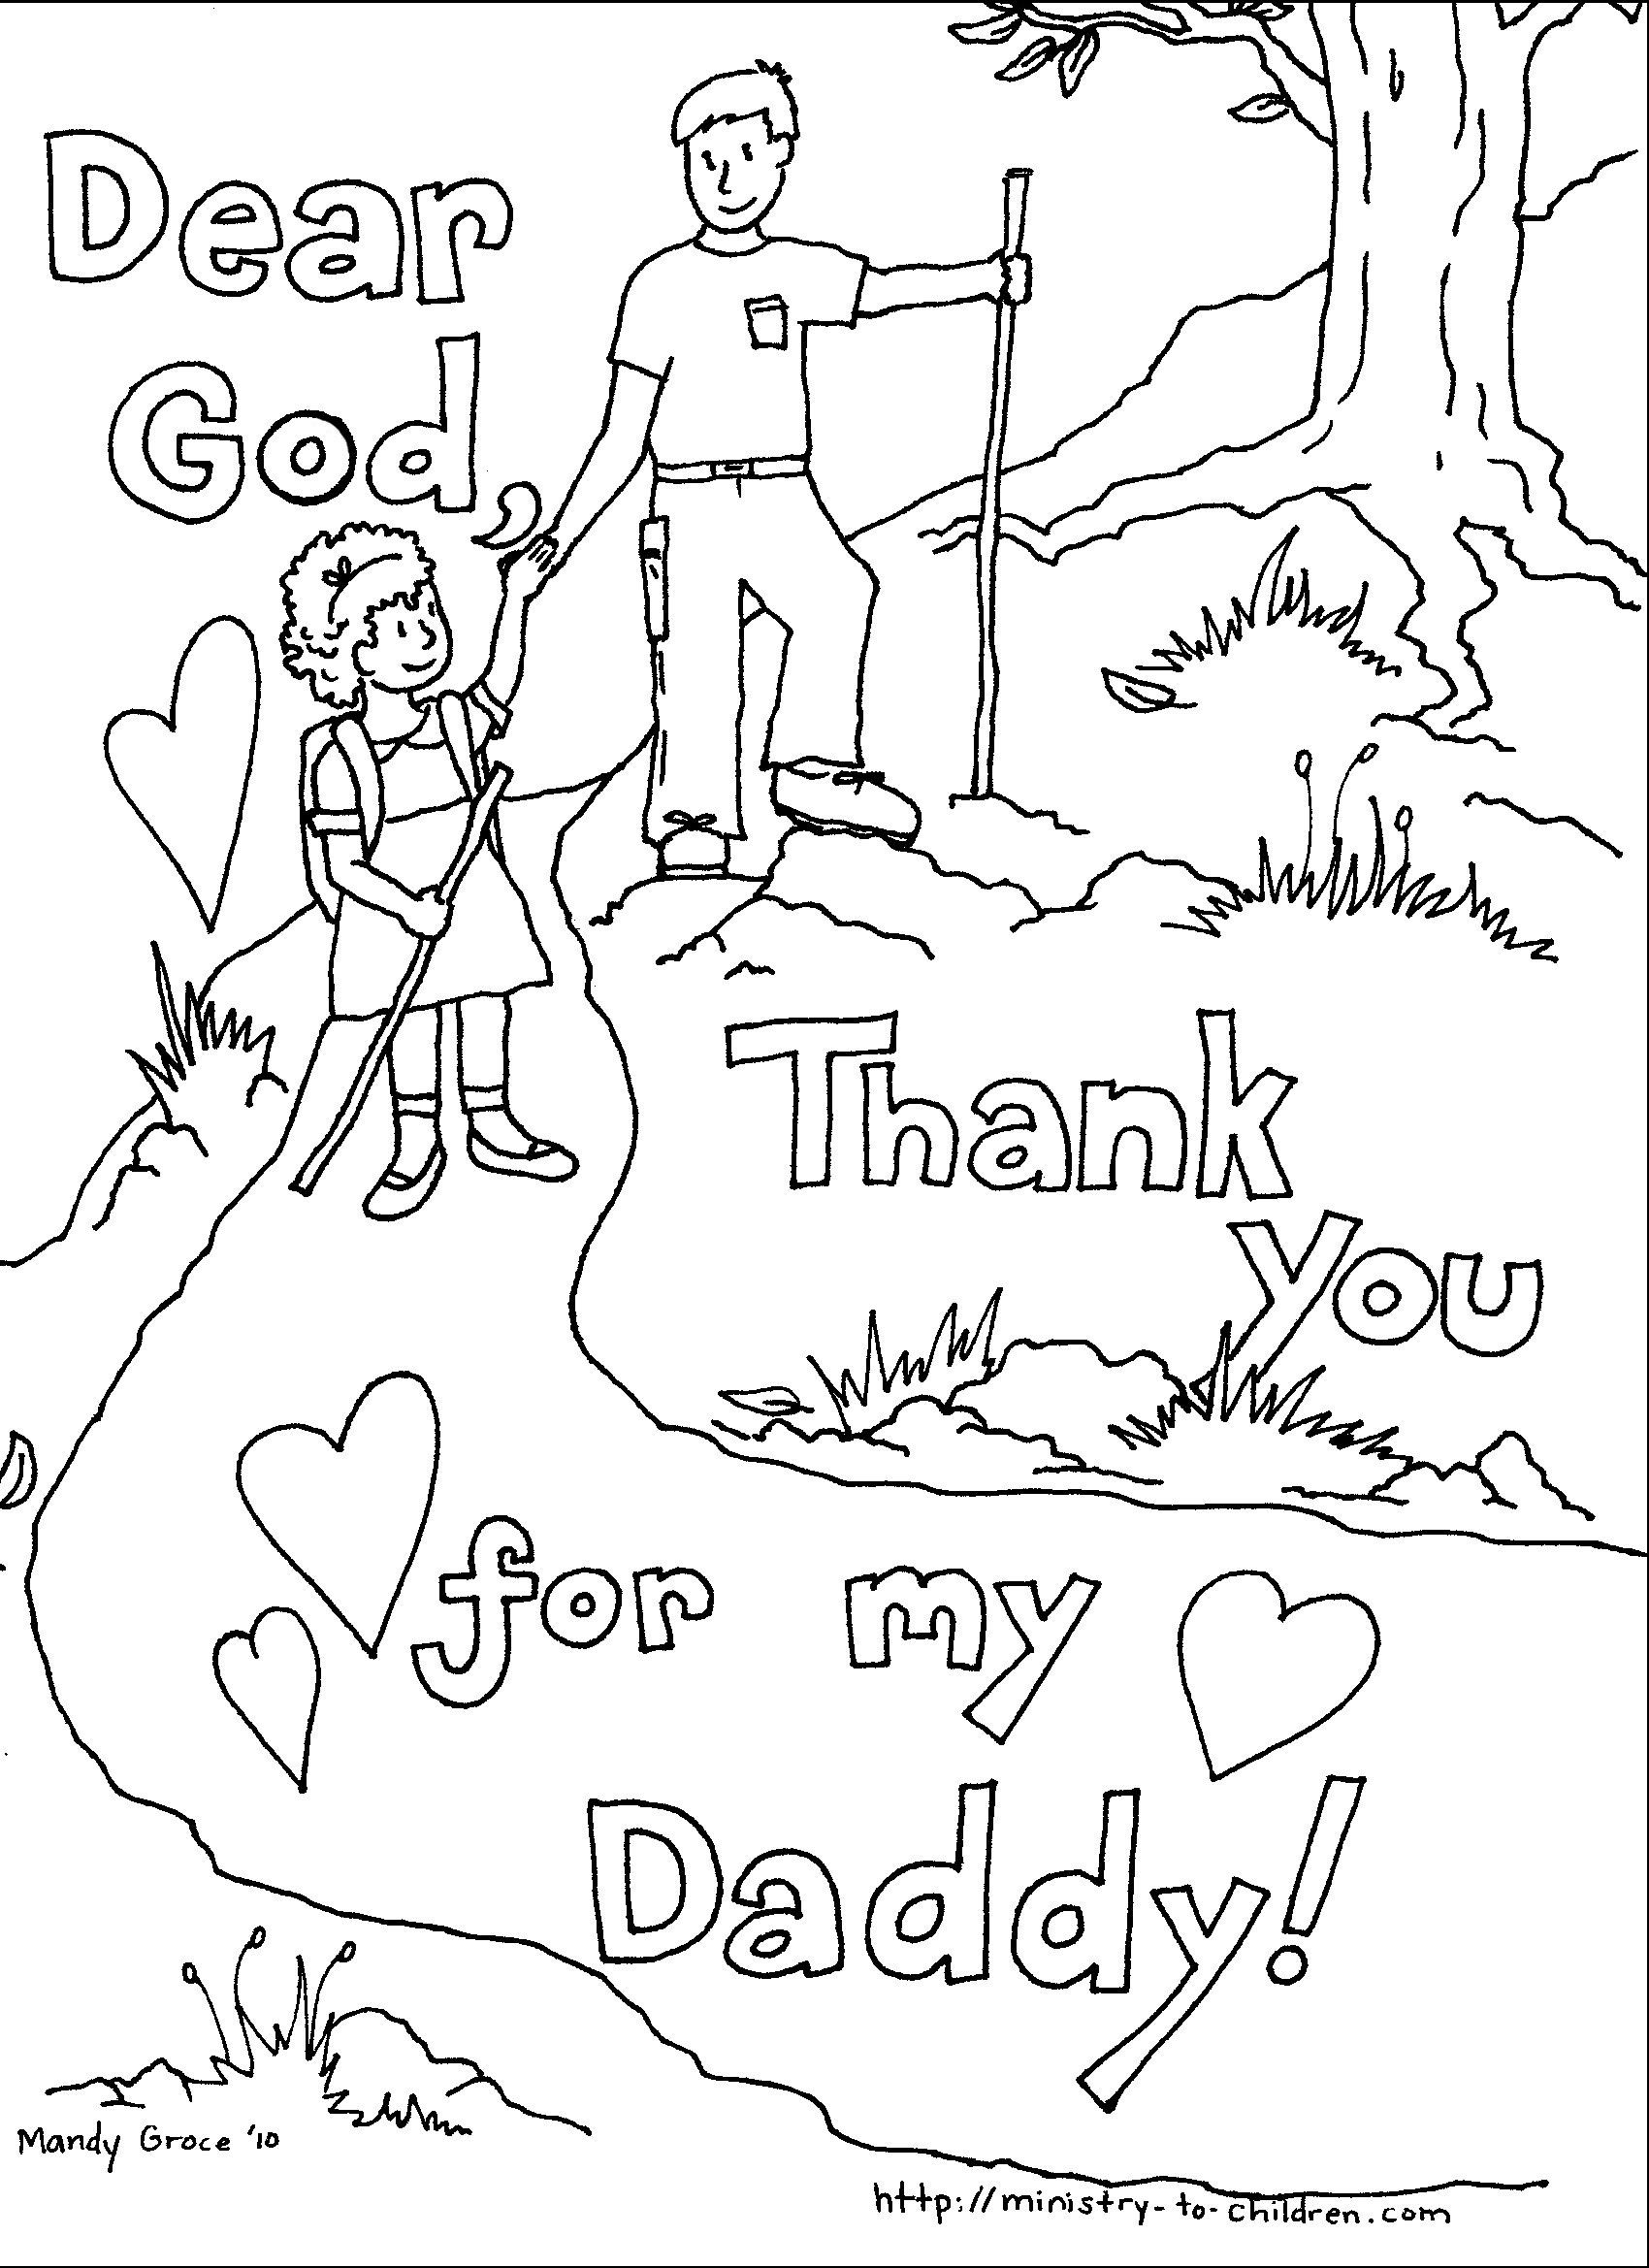 Fathers Day Coloring Pages To Print Free Large Images Dyi